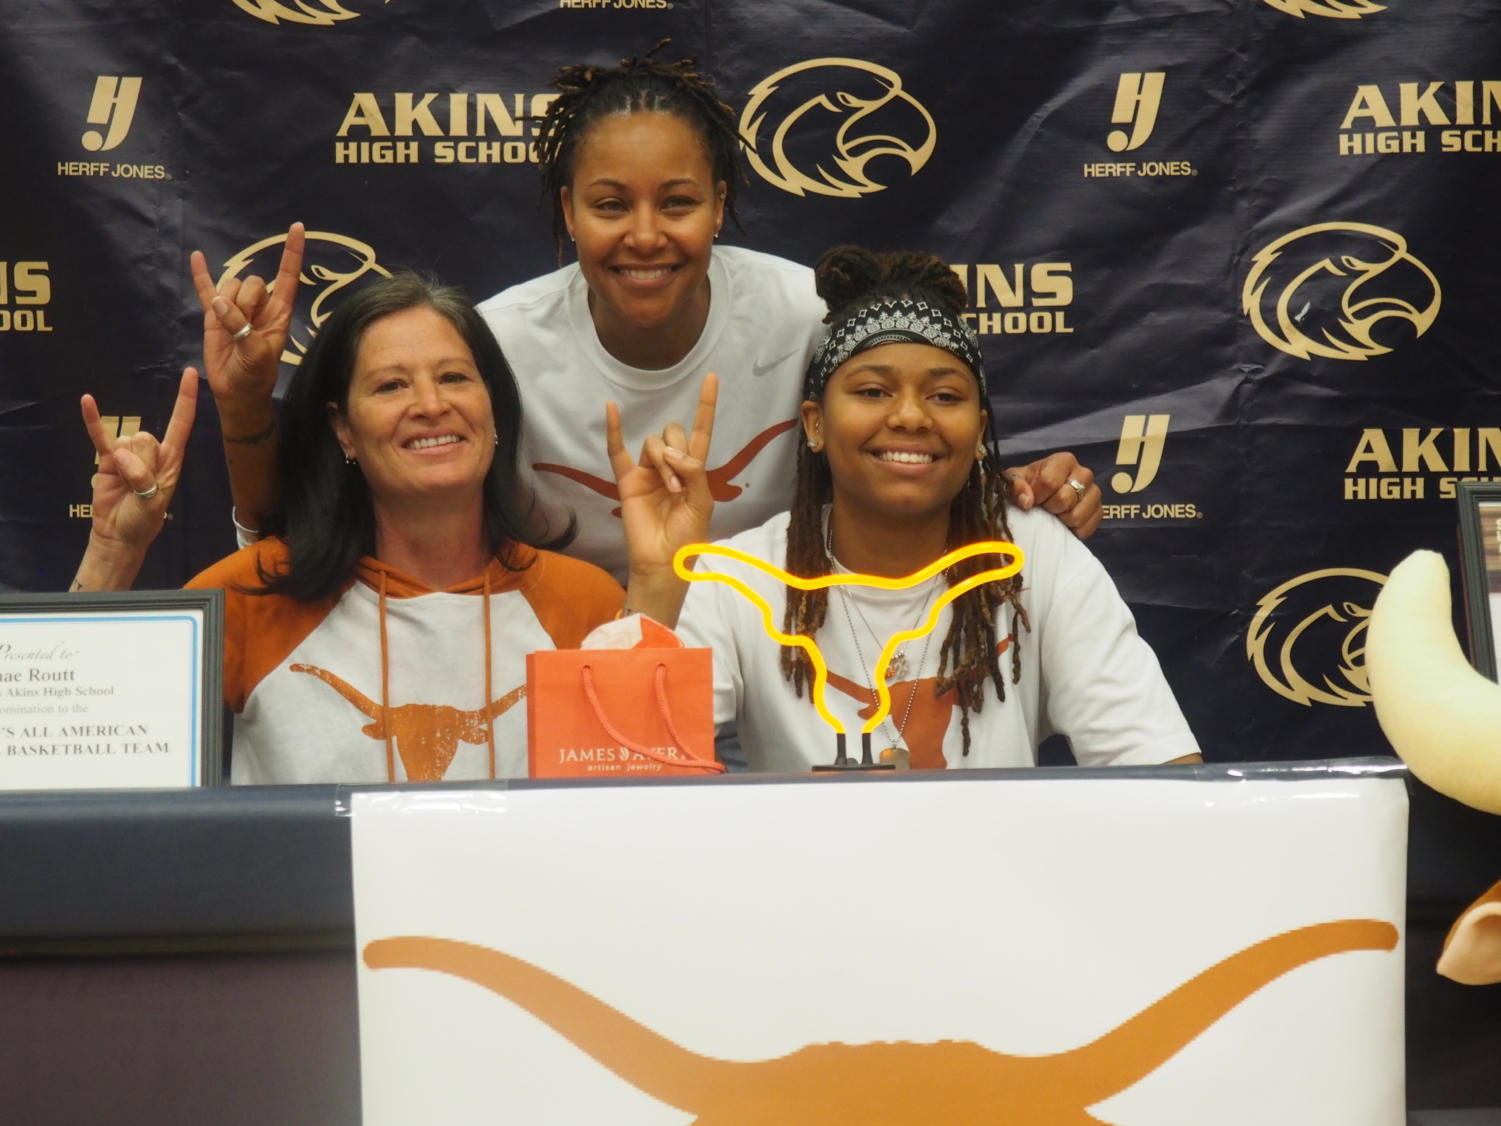 Shae Routt poses for a picture as she finished signing for the University of Texas at Austin.